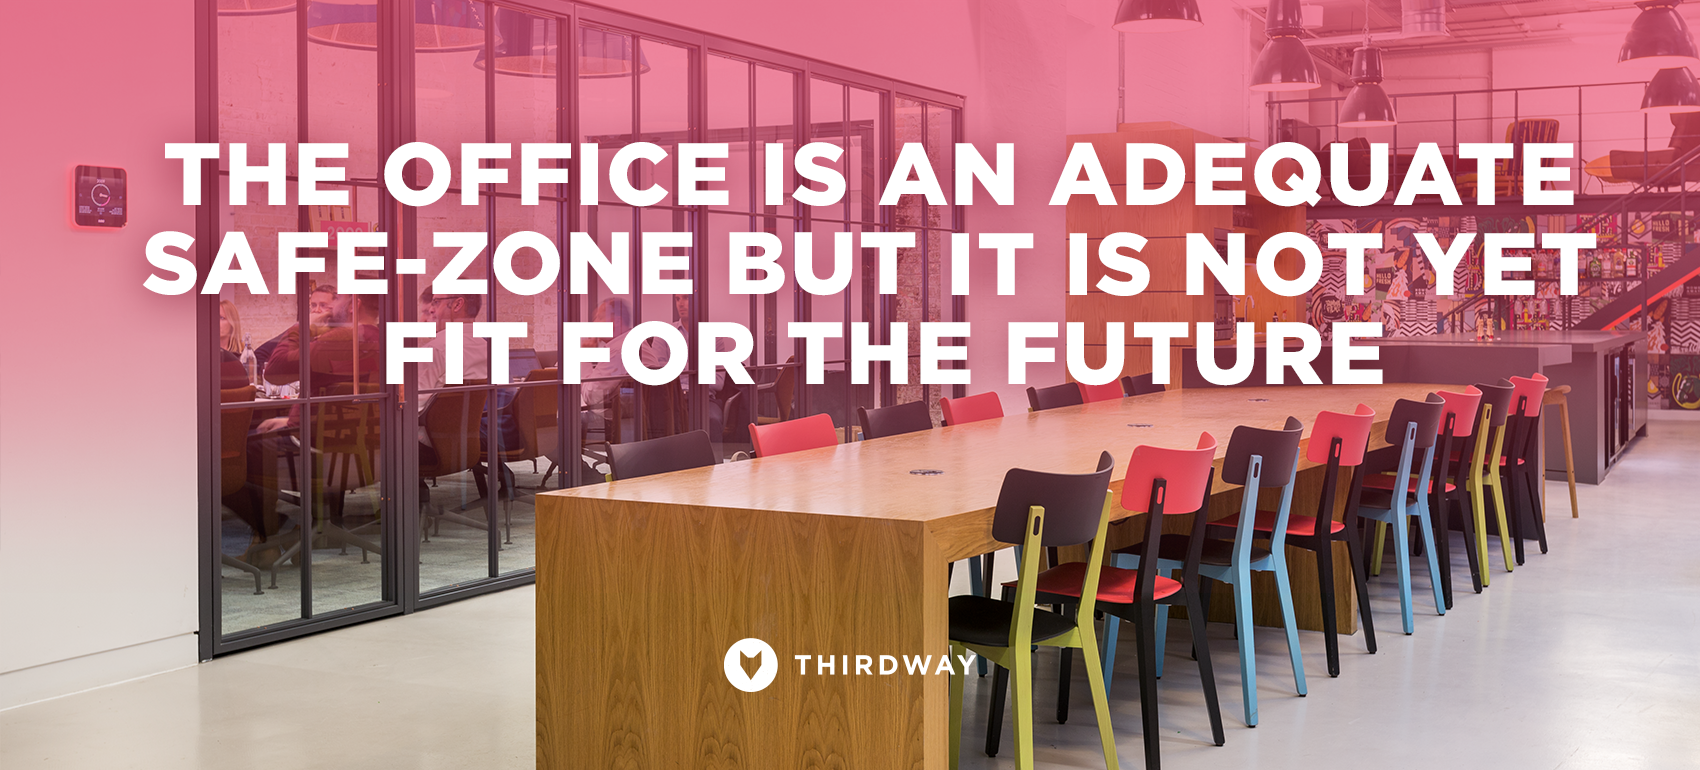 The office is an adequate safe-zone but it is not yet fit for the future